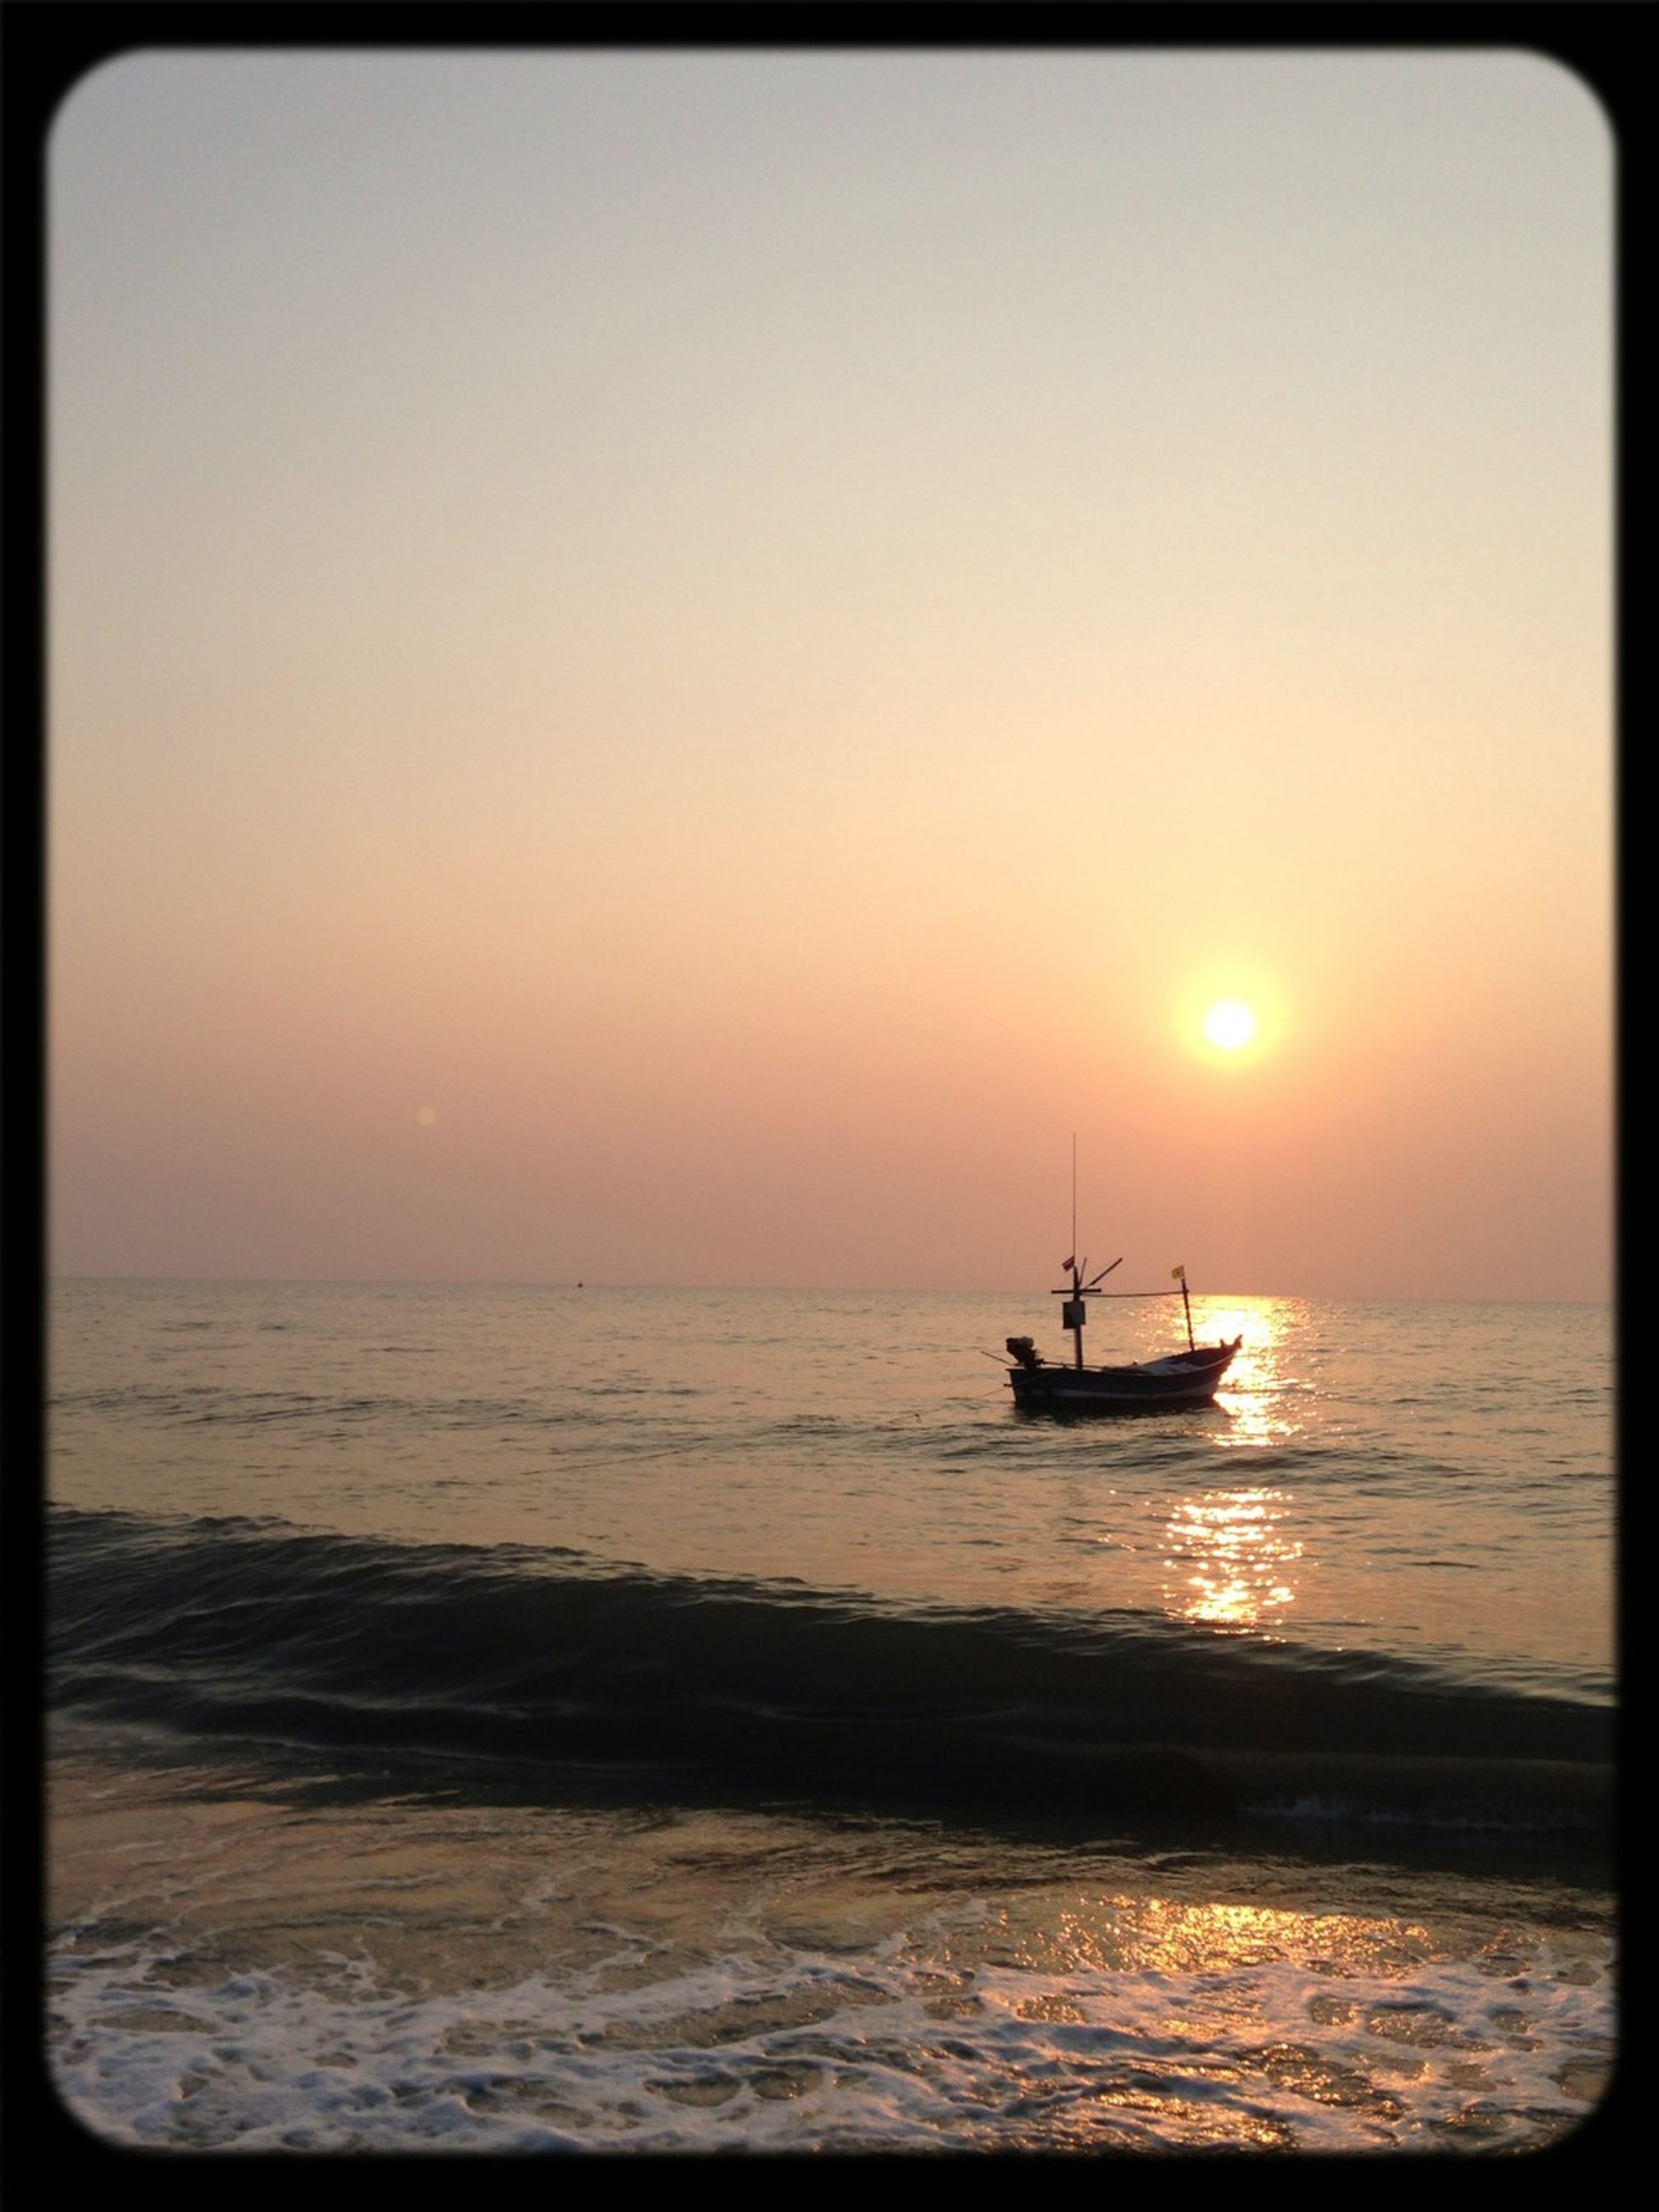 sea, sunset, water, horizon over water, nautical vessel, transportation, boat, scenics, mode of transport, tranquil scene, beauty in nature, tranquility, sun, orange color, nature, sky, silhouette, idyllic, auto post production filter, transfer print